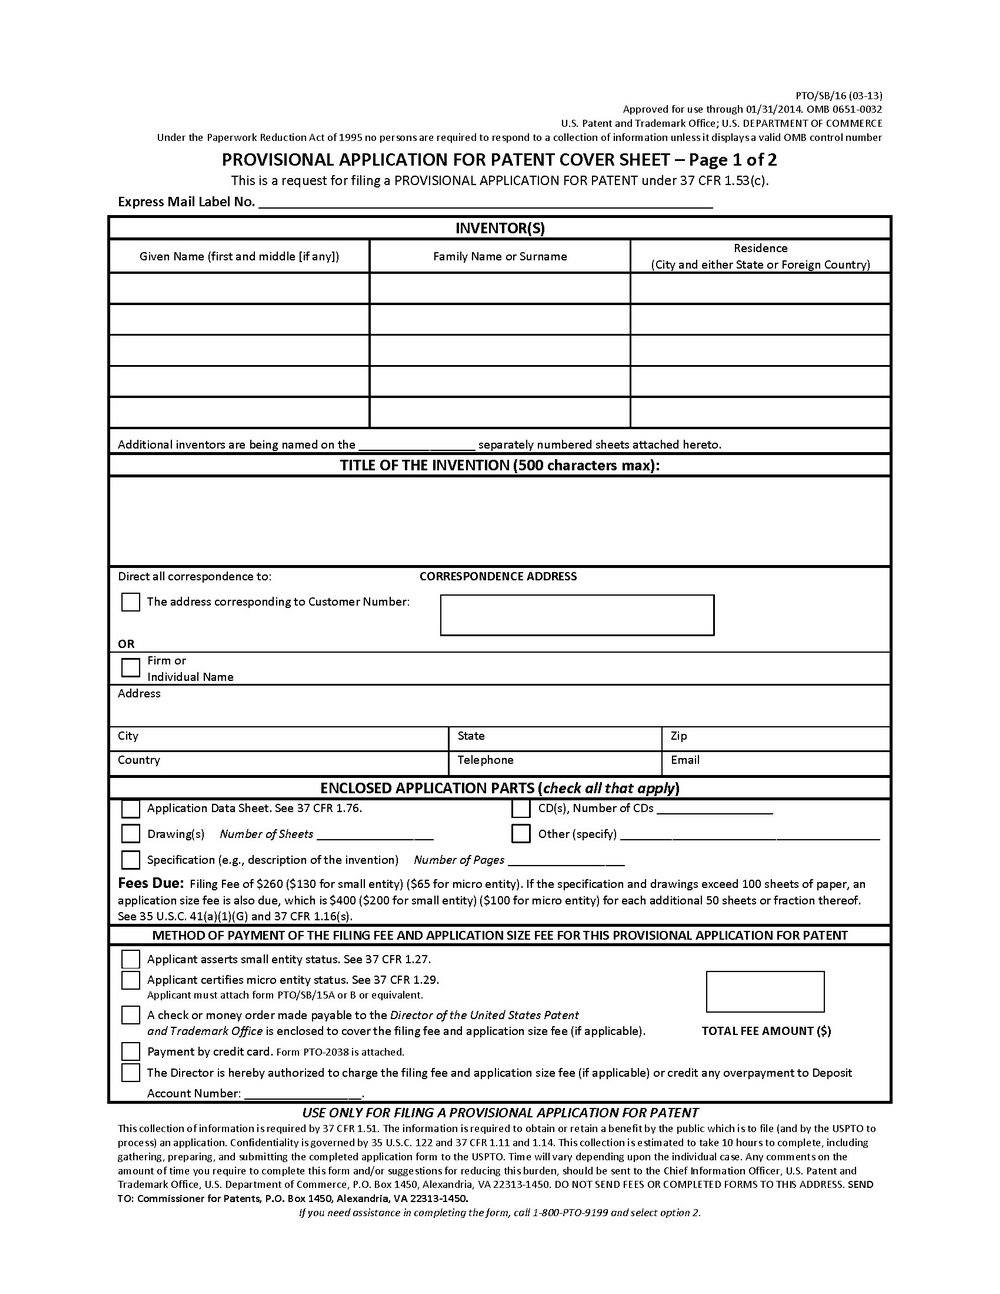 Provisional Patent Application Template Uspto